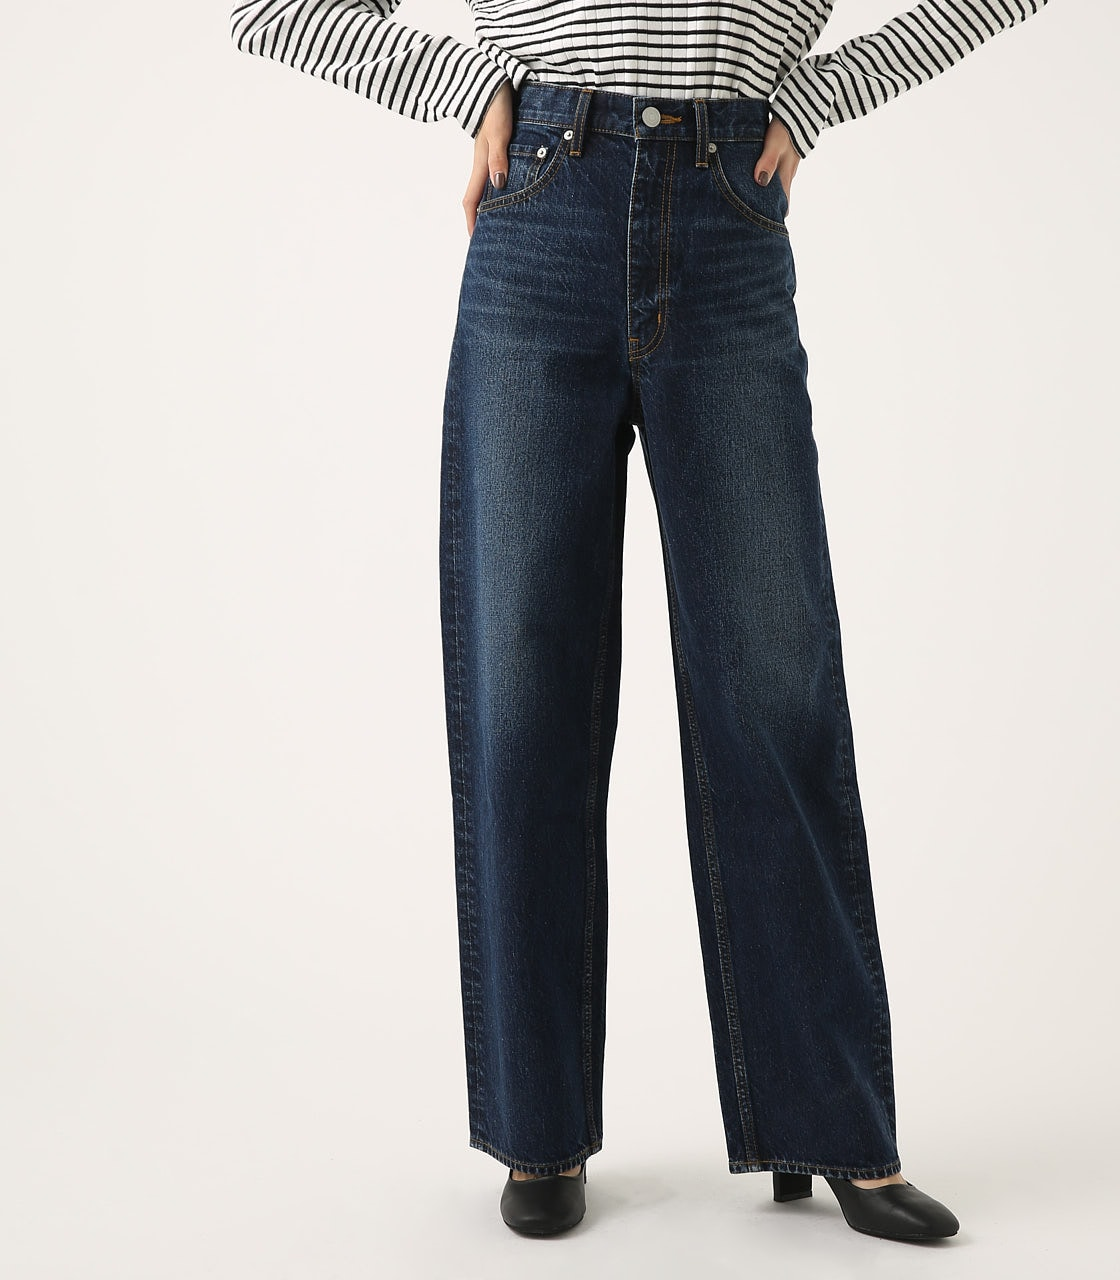 HIGH WAIST DENIM WIDE 詳細画像 D/BLU 1